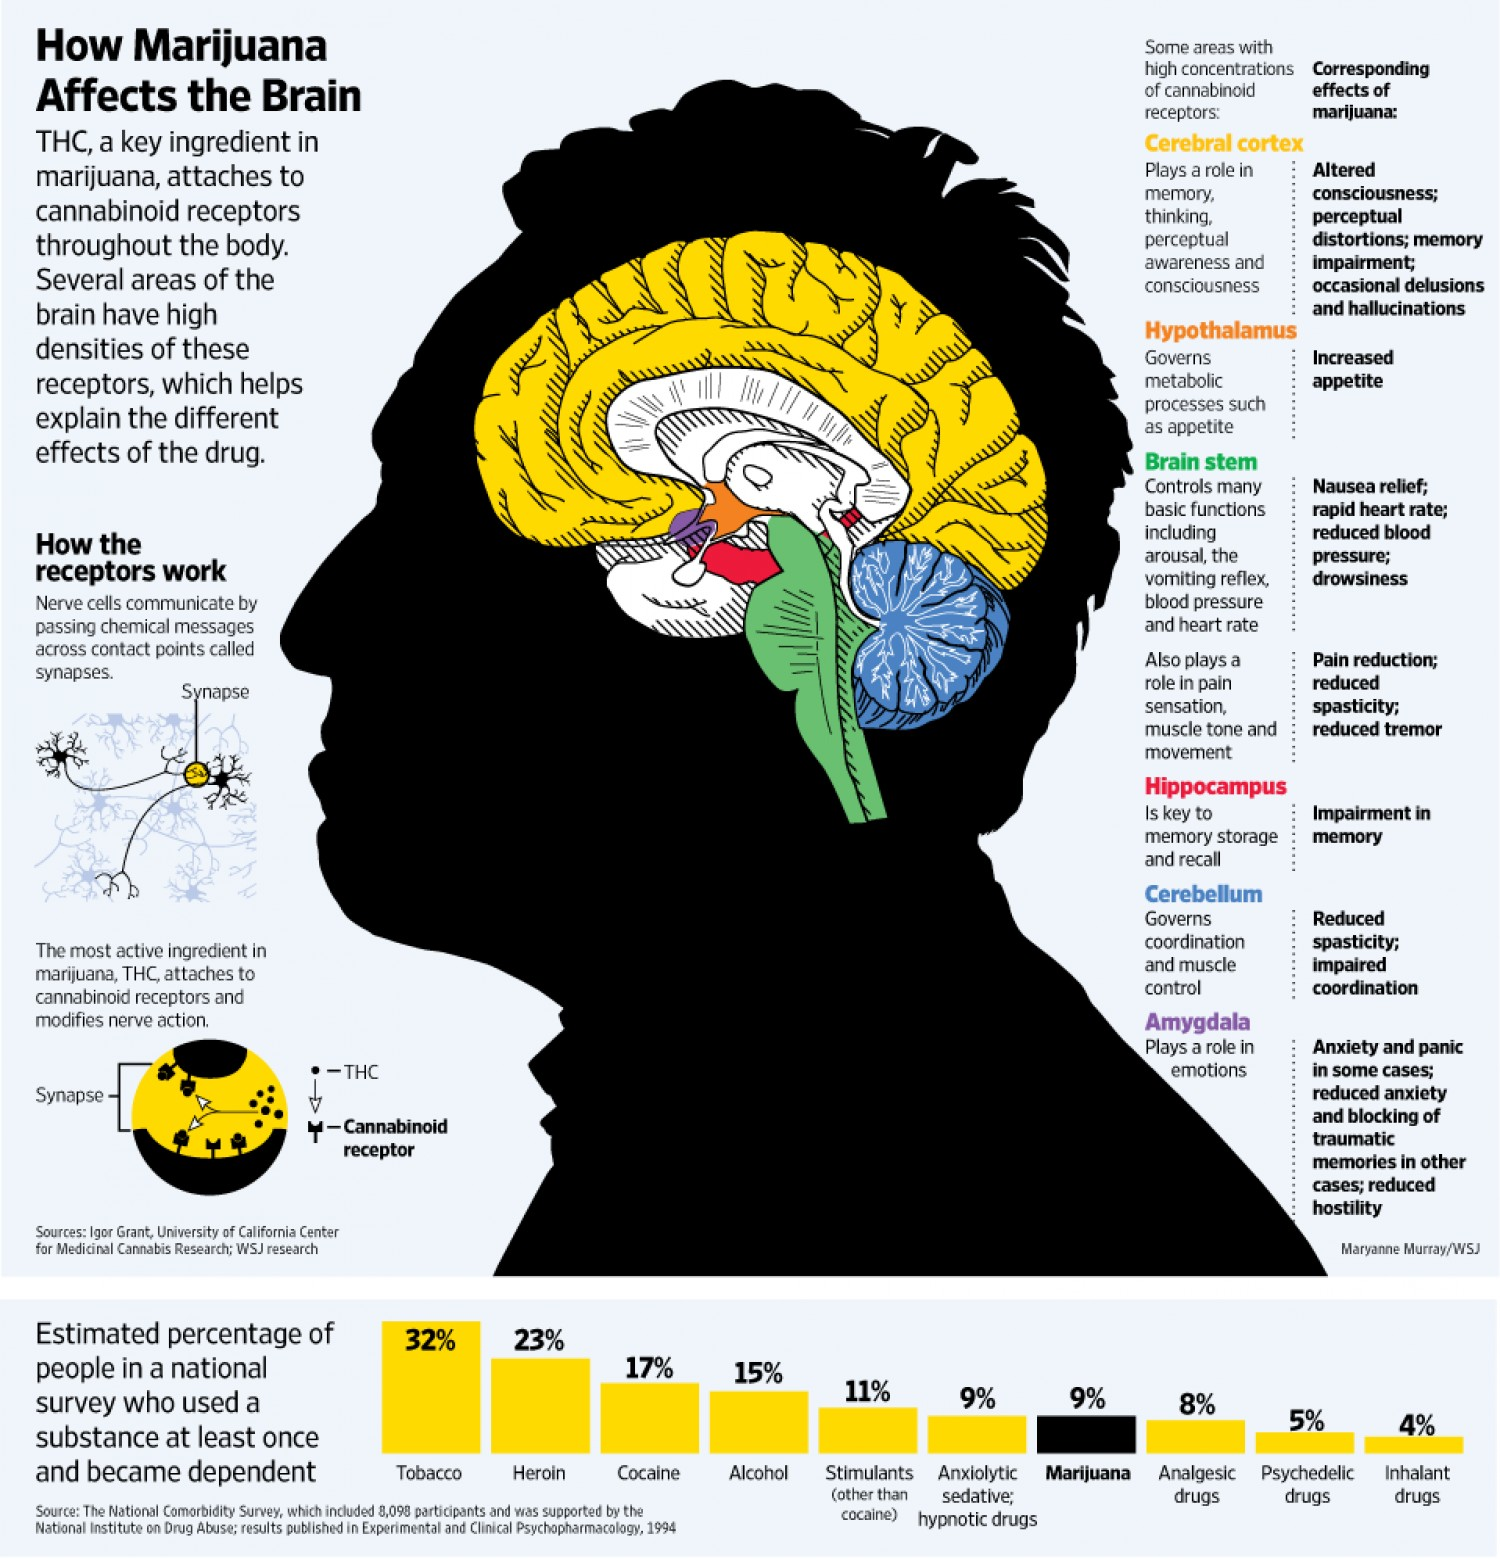 How Marijuana Affects the Brain